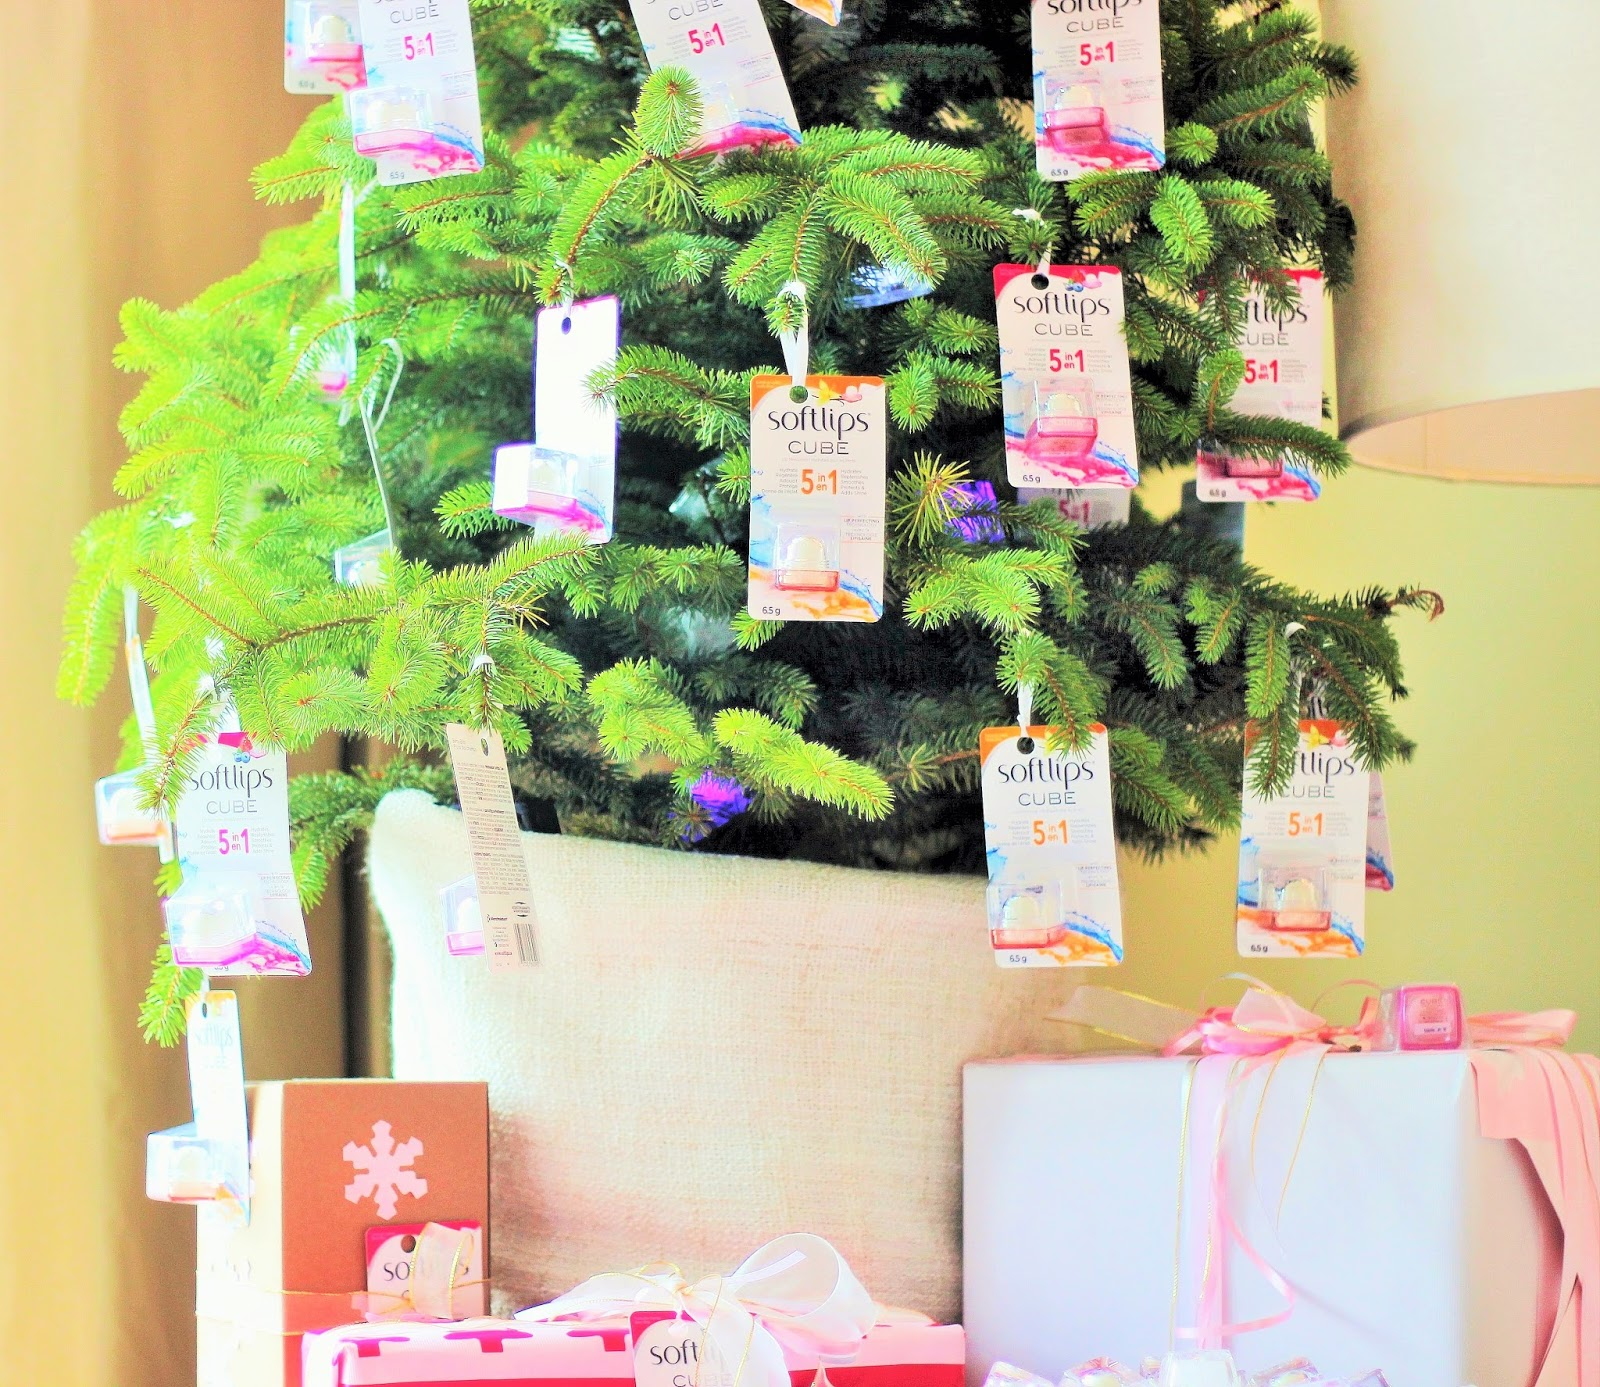 2014 Home For Holidays Event Featuring Soft Lips